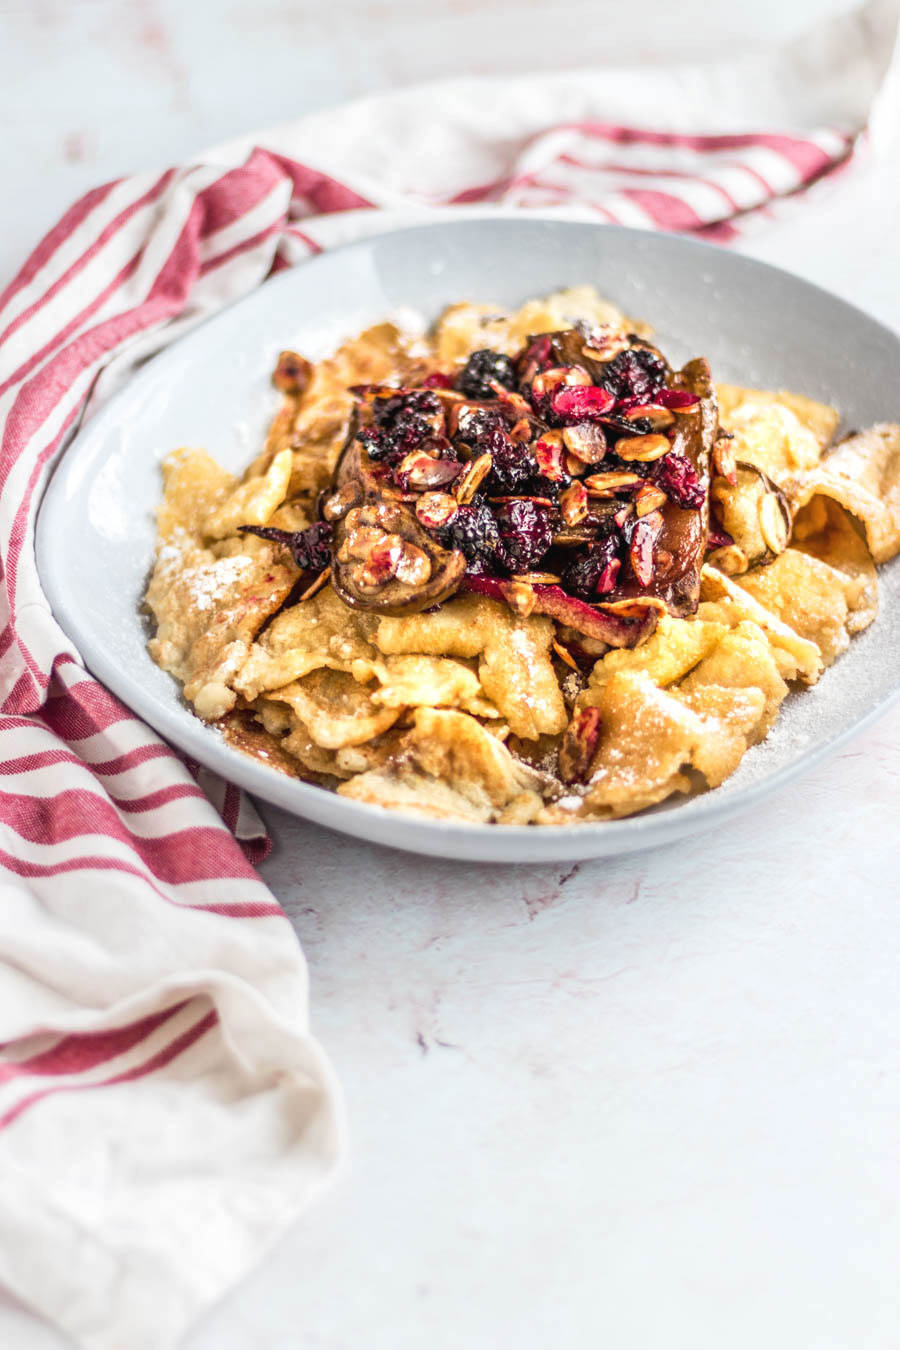 Vegan Kaiserschmarrn: Austrian Torn Pancakes With Baked Pears & Blackberries